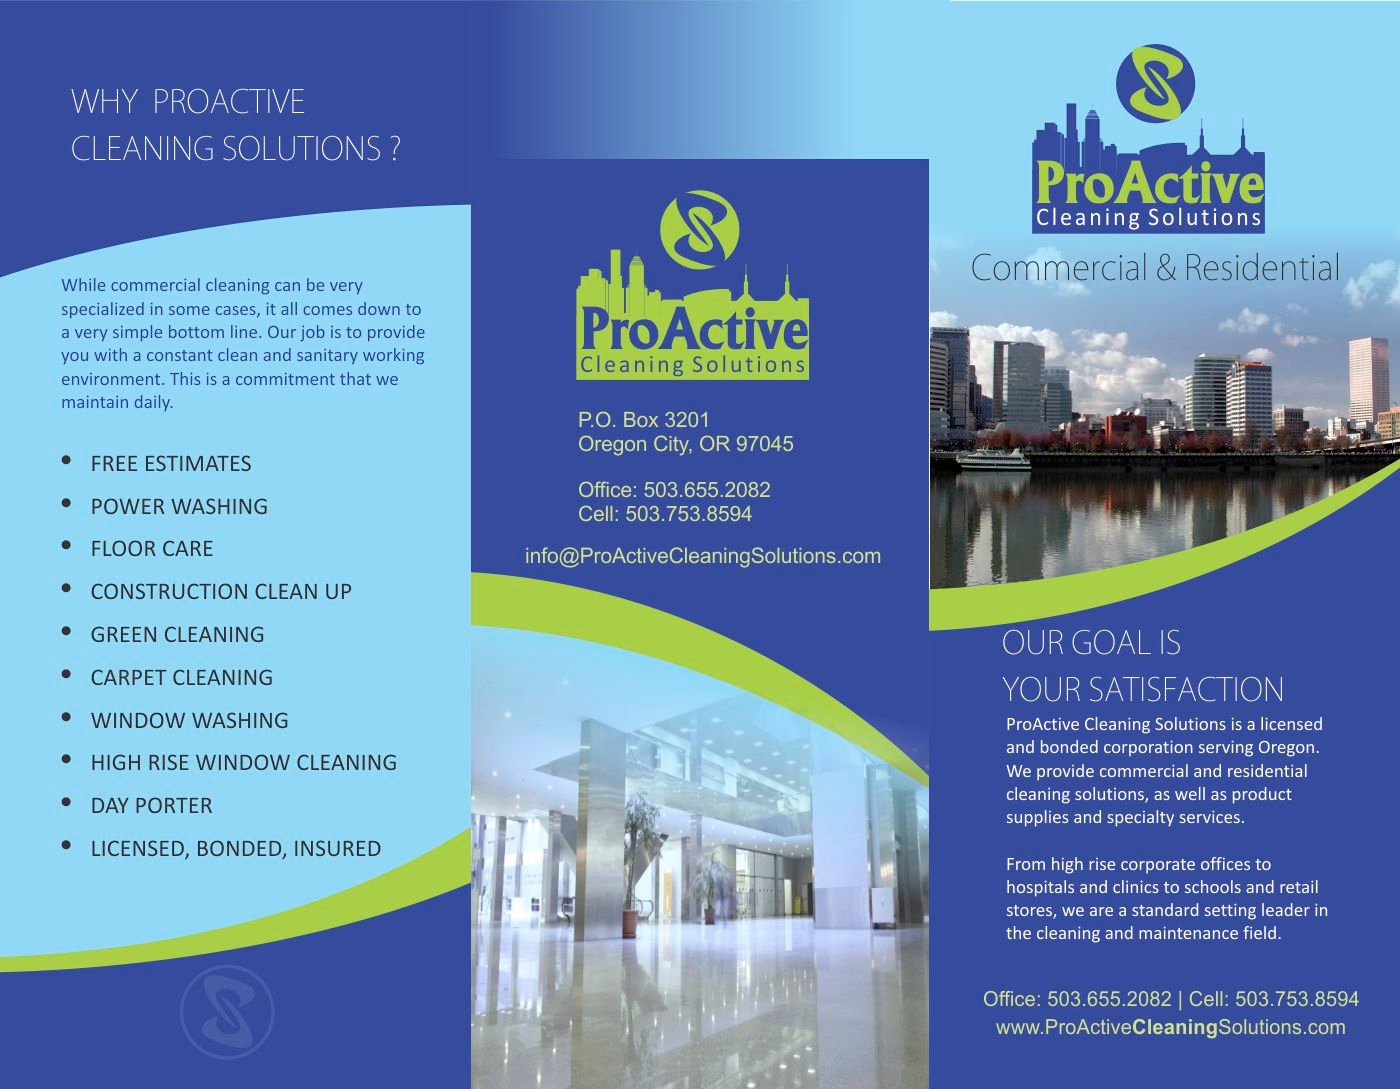 ProActive Cleaning Solutions, LLC